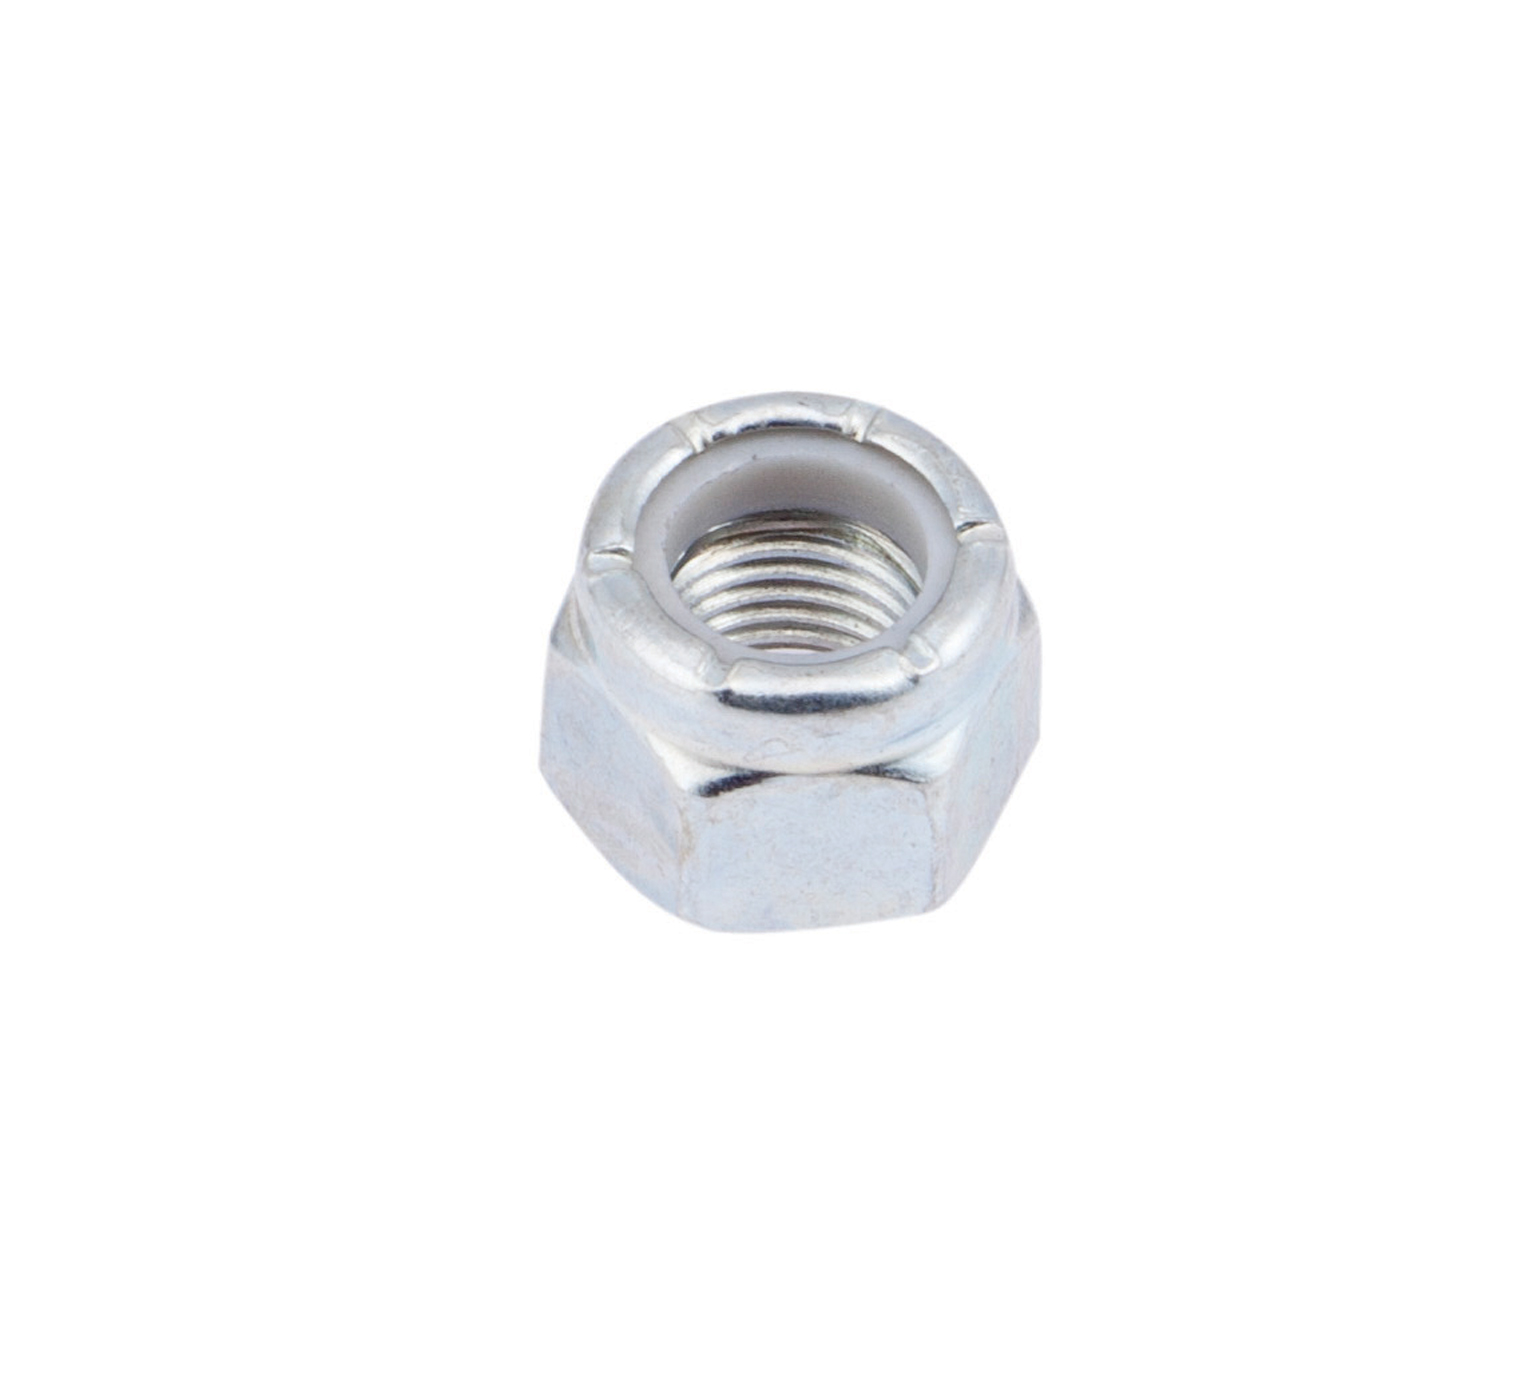 67312 Hex Lock Nut - 0.562 x 0.468 in alt 1